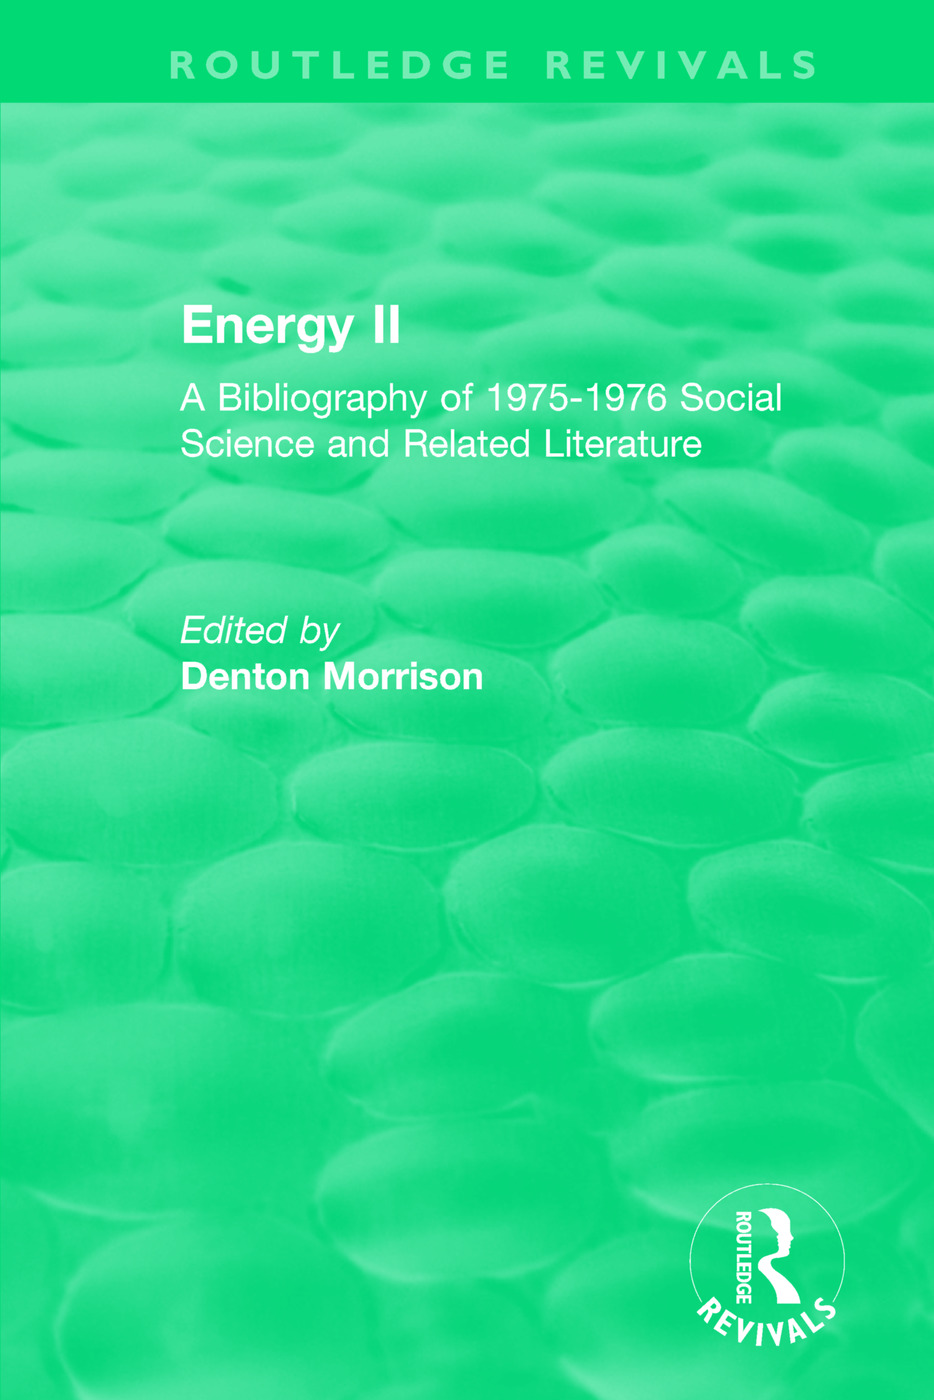 Routledge Revivals: Energy II (1977): A Bibliography of 1975-1976 Social Science and Related Literature book cover